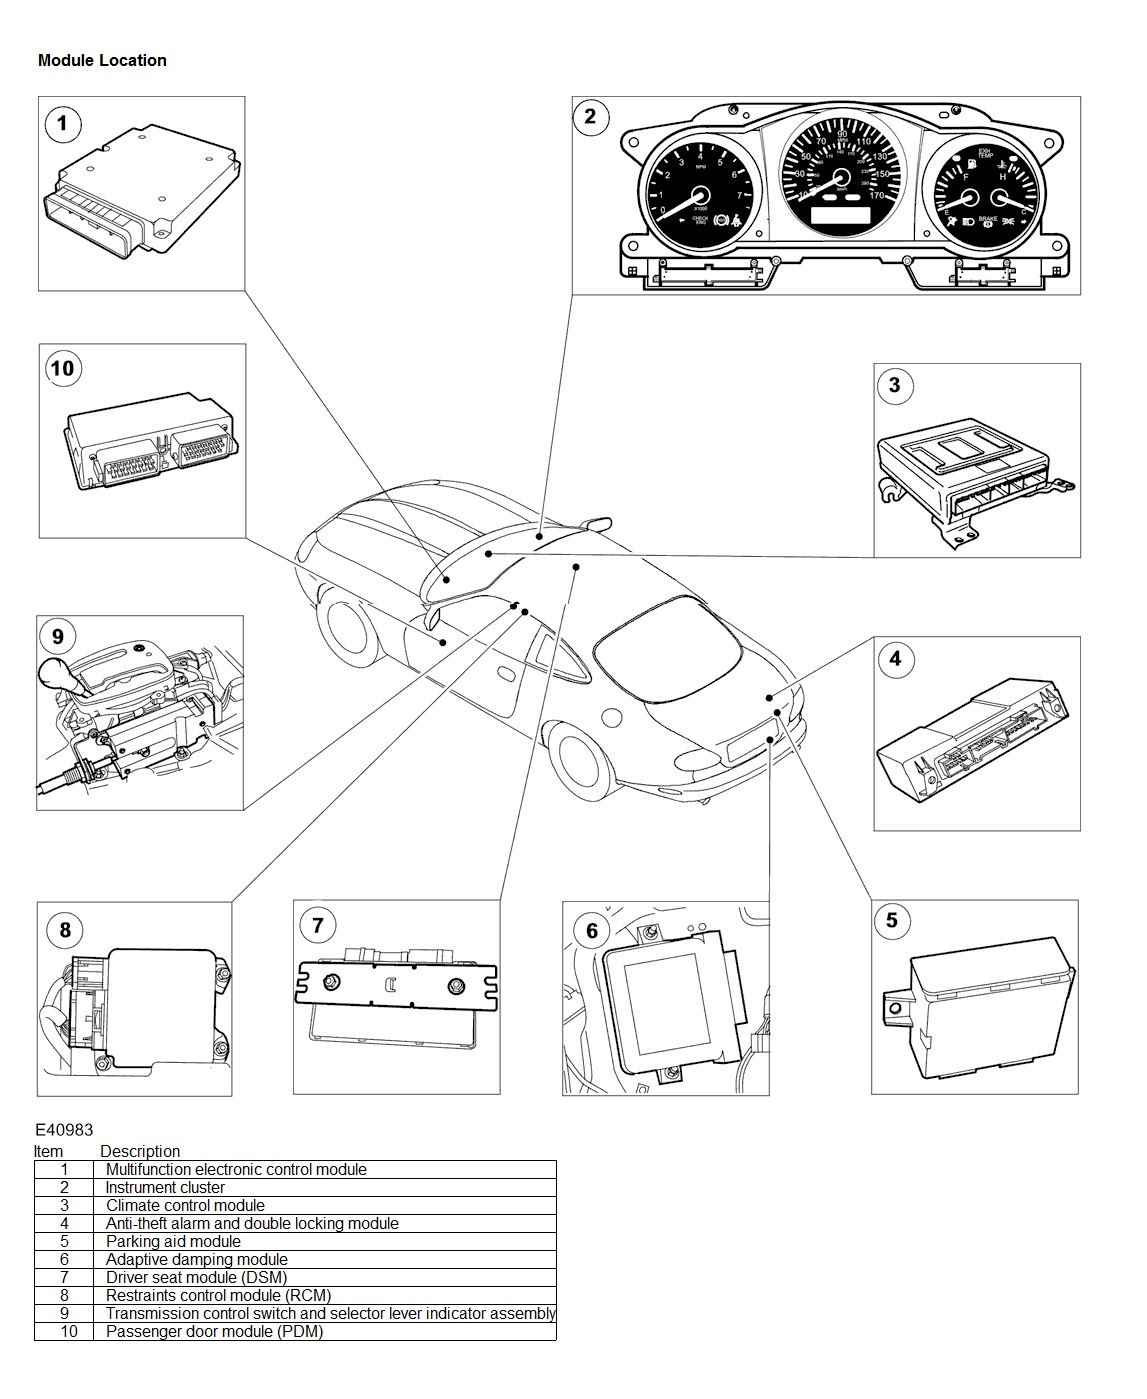 2001 Jaguar Xjr Fuse Box. Jaguar. Auto Fuse Box Diagram